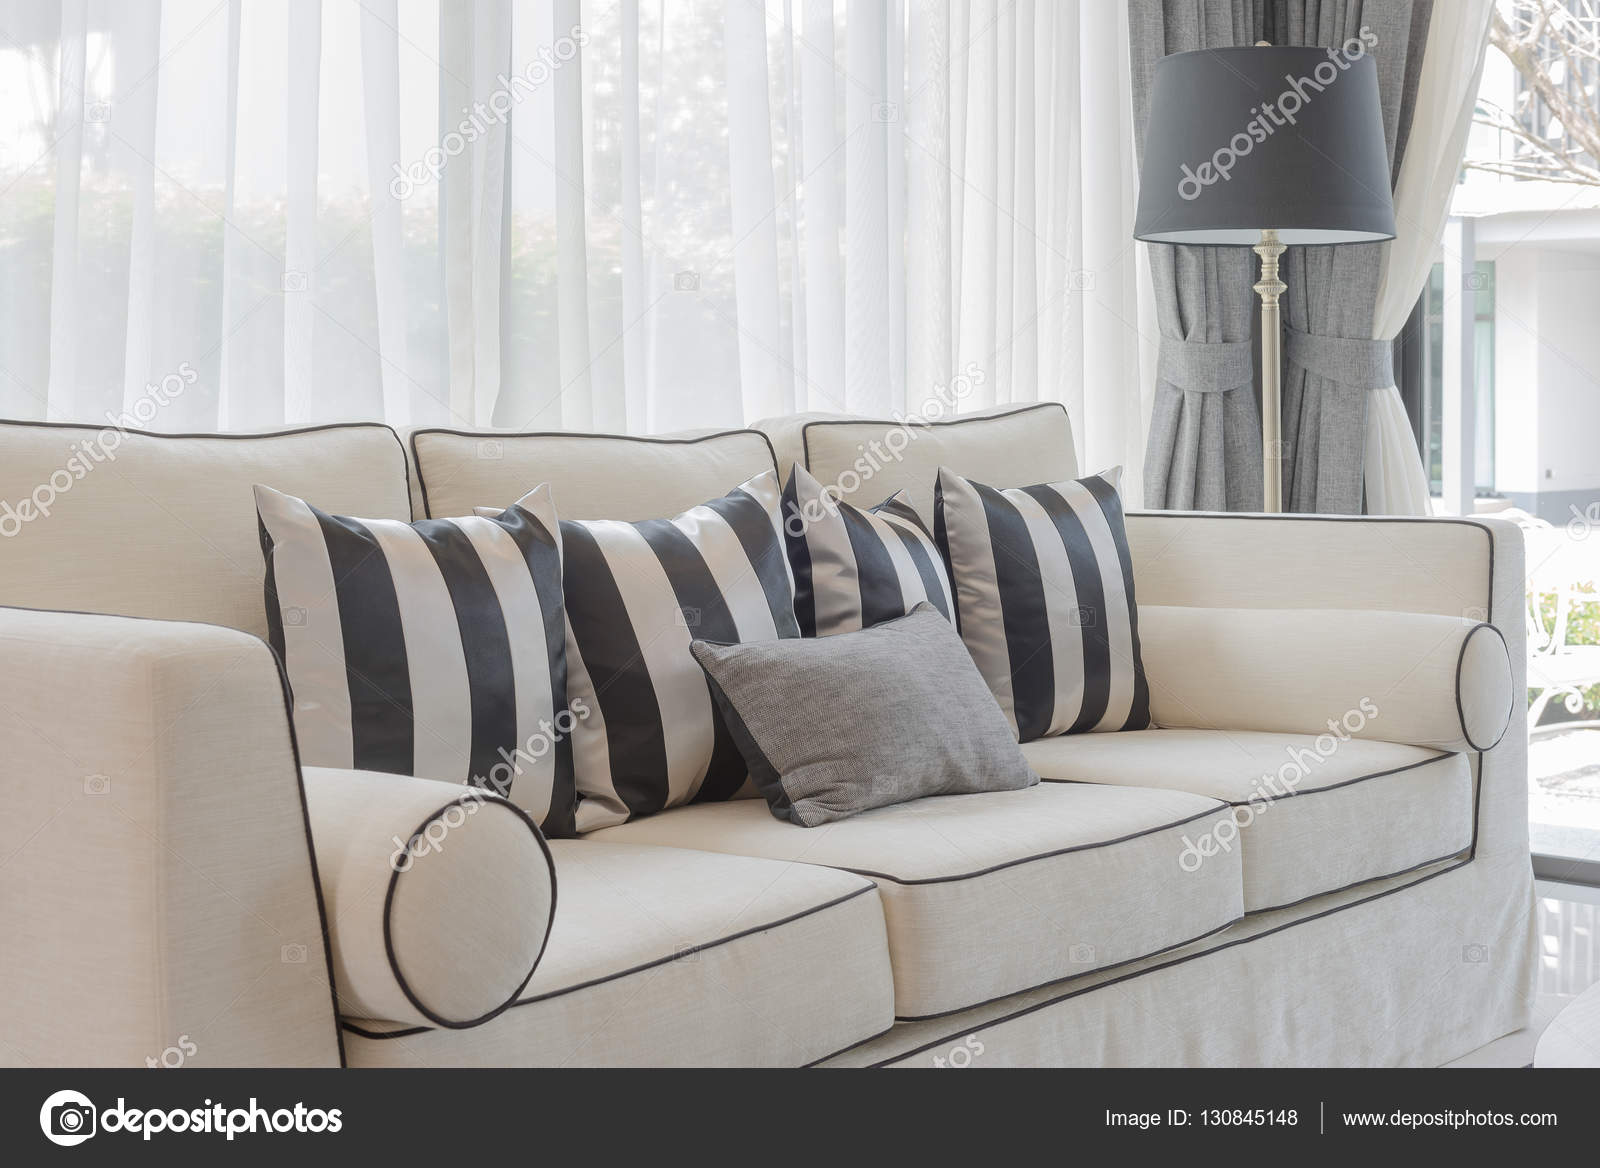 Prime White Elegance Sofa With Black And White Pillows In Luxury Bralicious Painted Fabric Chair Ideas Braliciousco